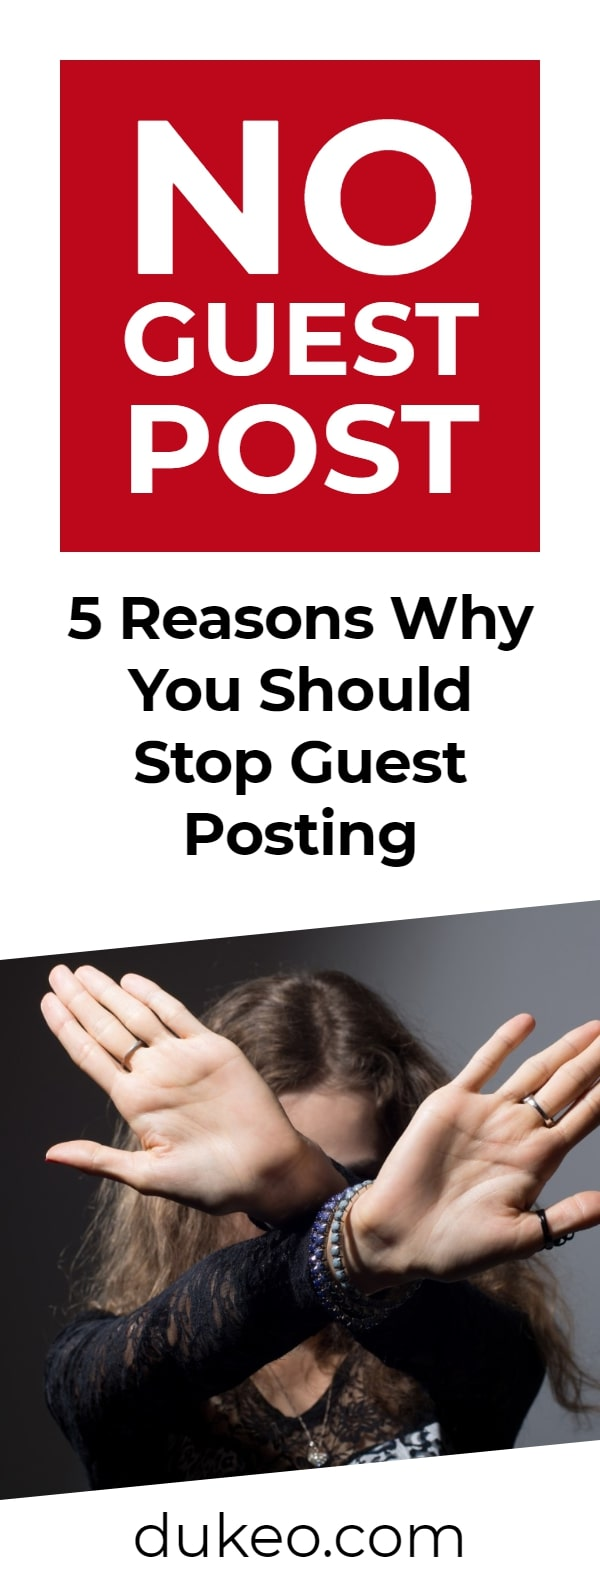 No Guest Post: 5 Reasons Why You Should Stop Guest Posting